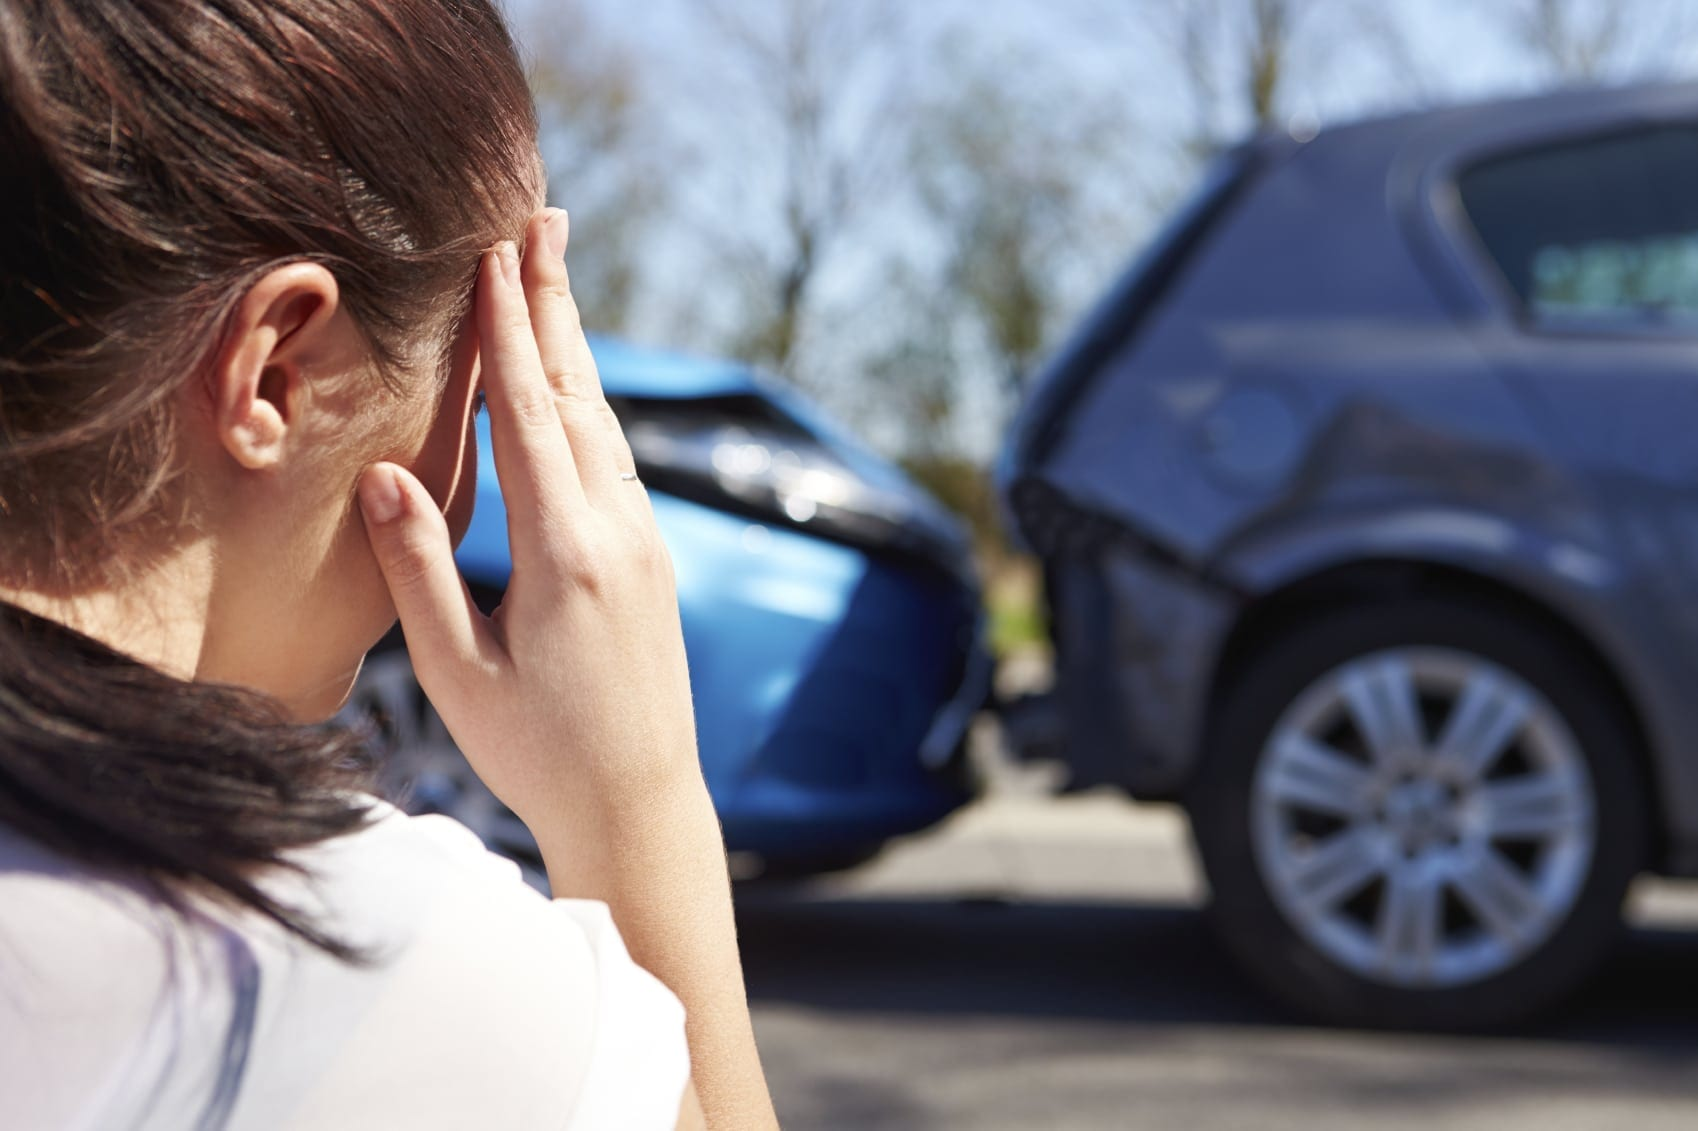 Woman Examining Rear End Car Accident Stock Photo